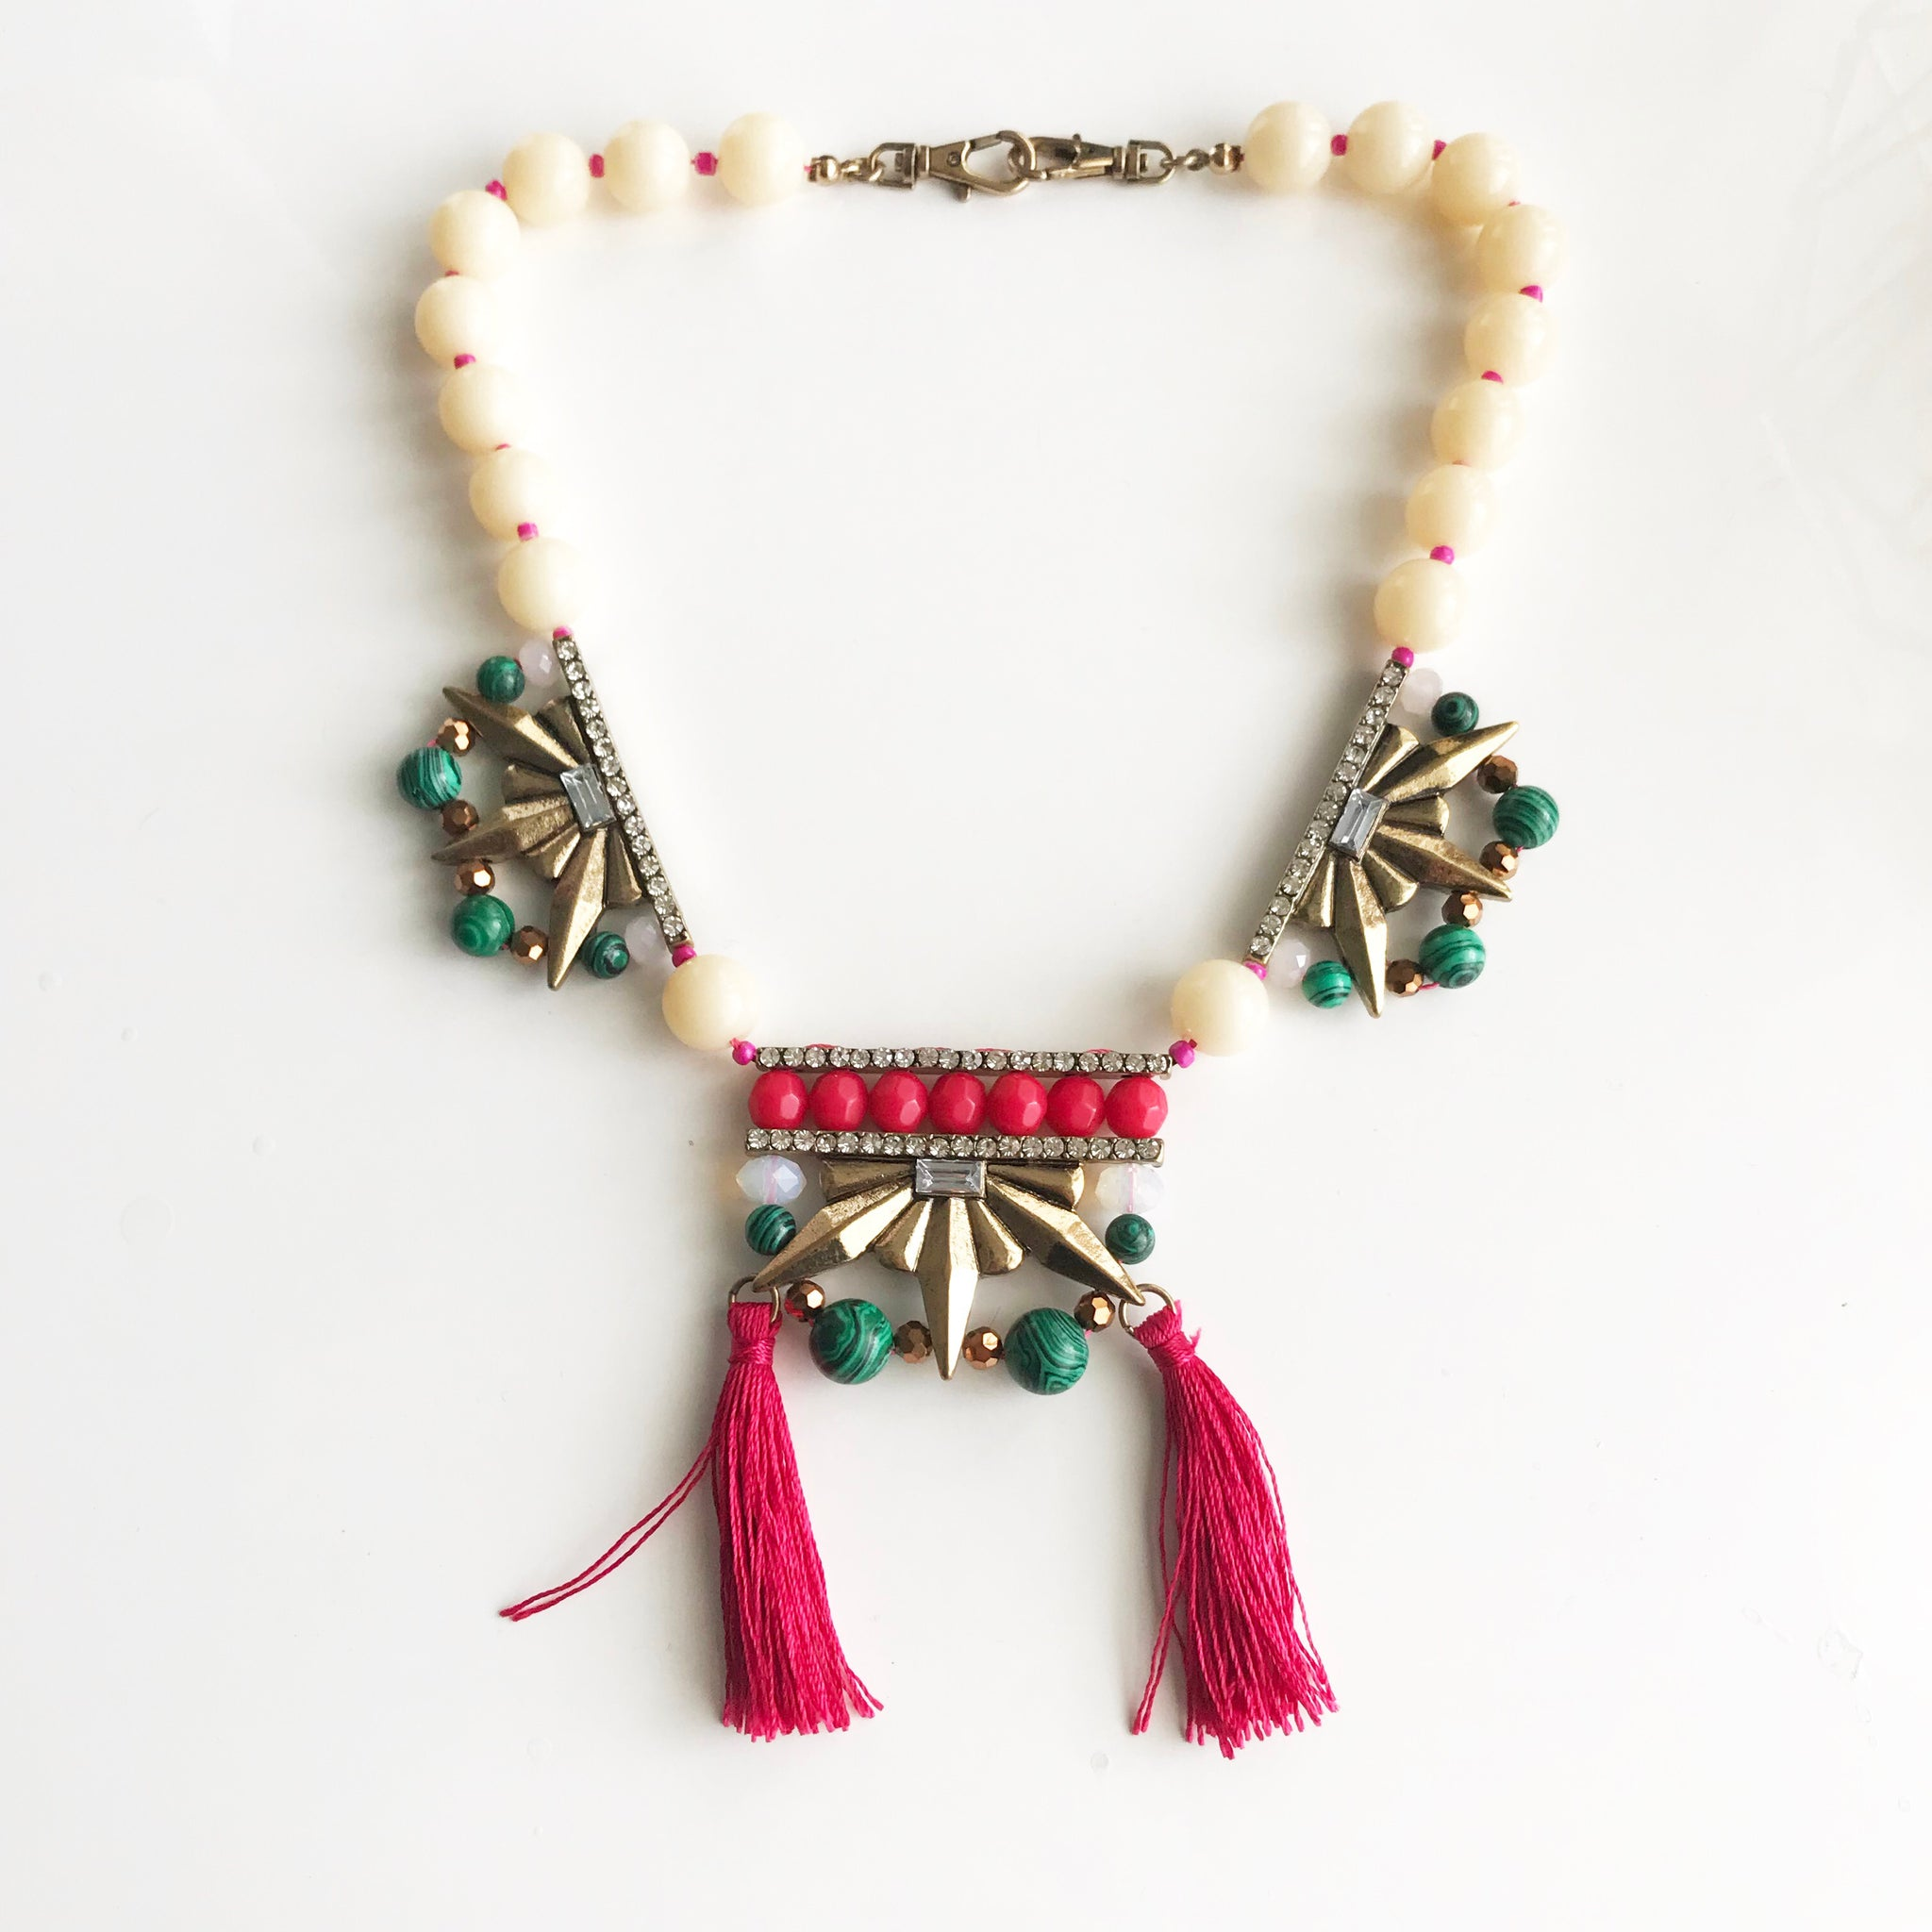 BEADED TASSEL STATEMENT NECKLACE